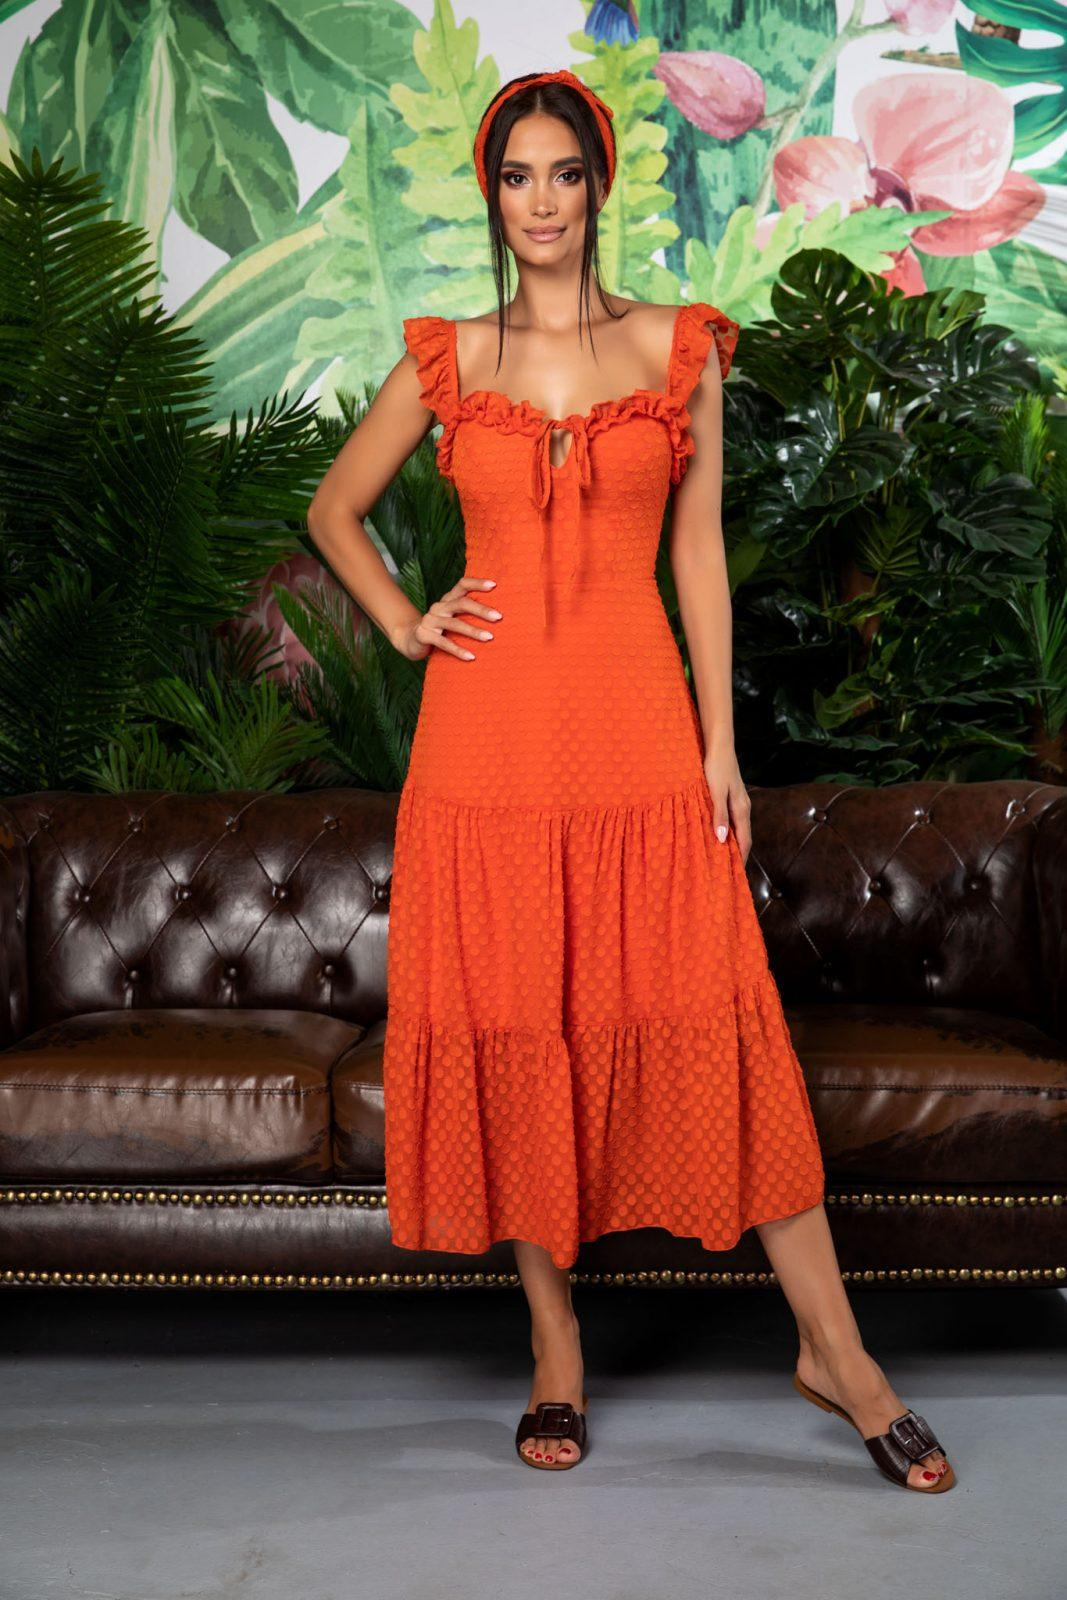 Romina Orange Dress